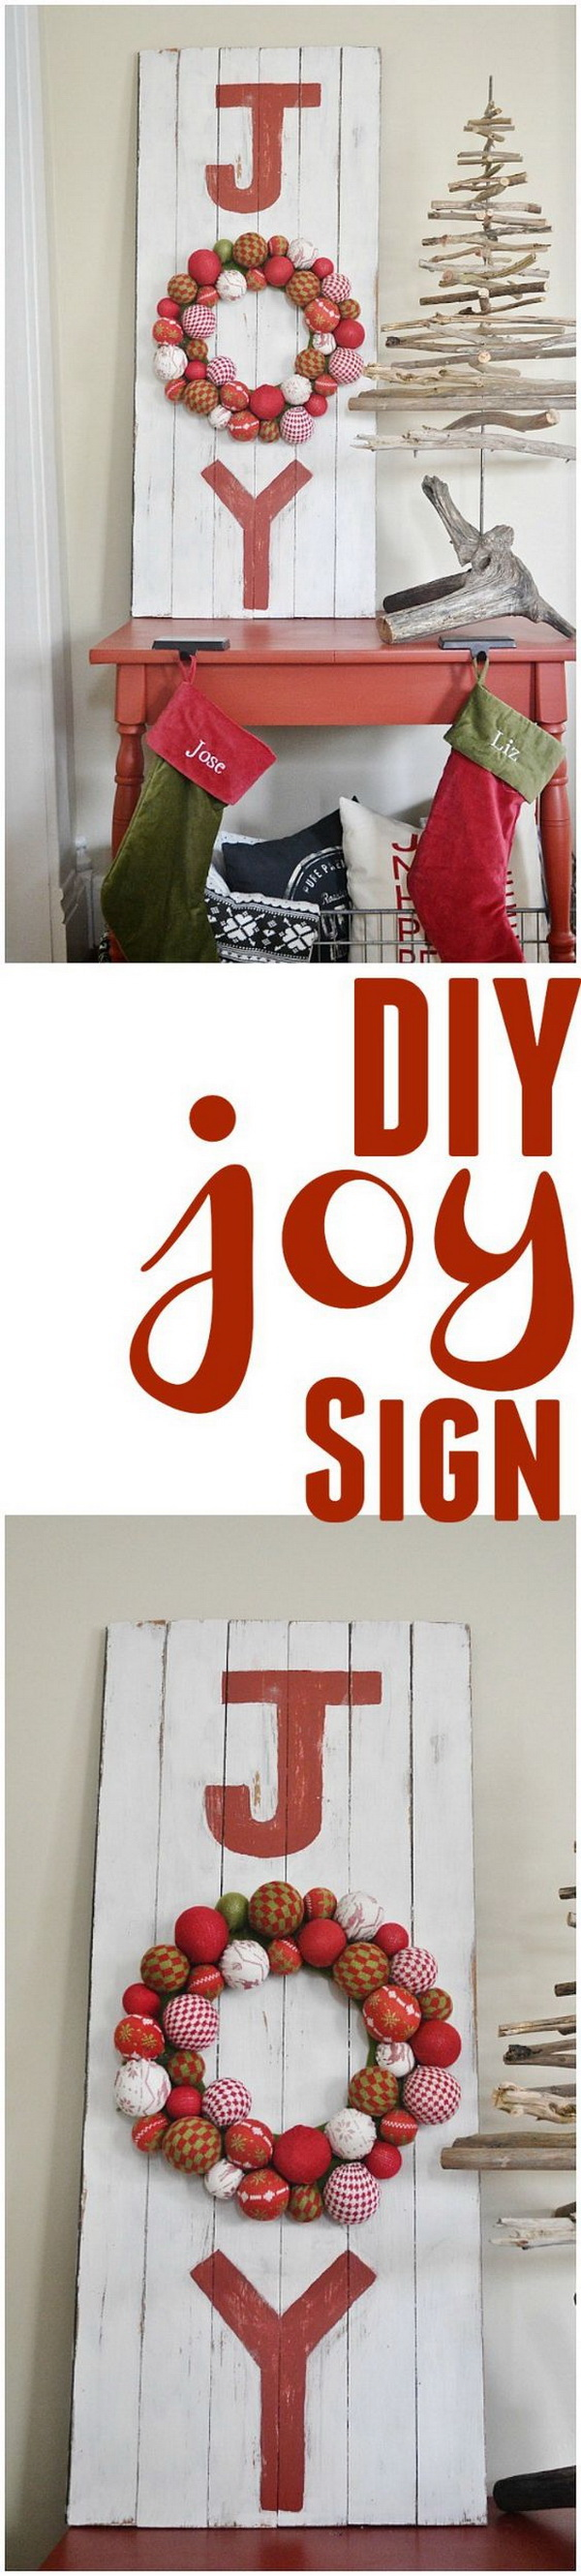 DIY Farmhouse Joy Sign. This DIY joy sign makes great decoration on your farmhouse front porch this Christmas season!